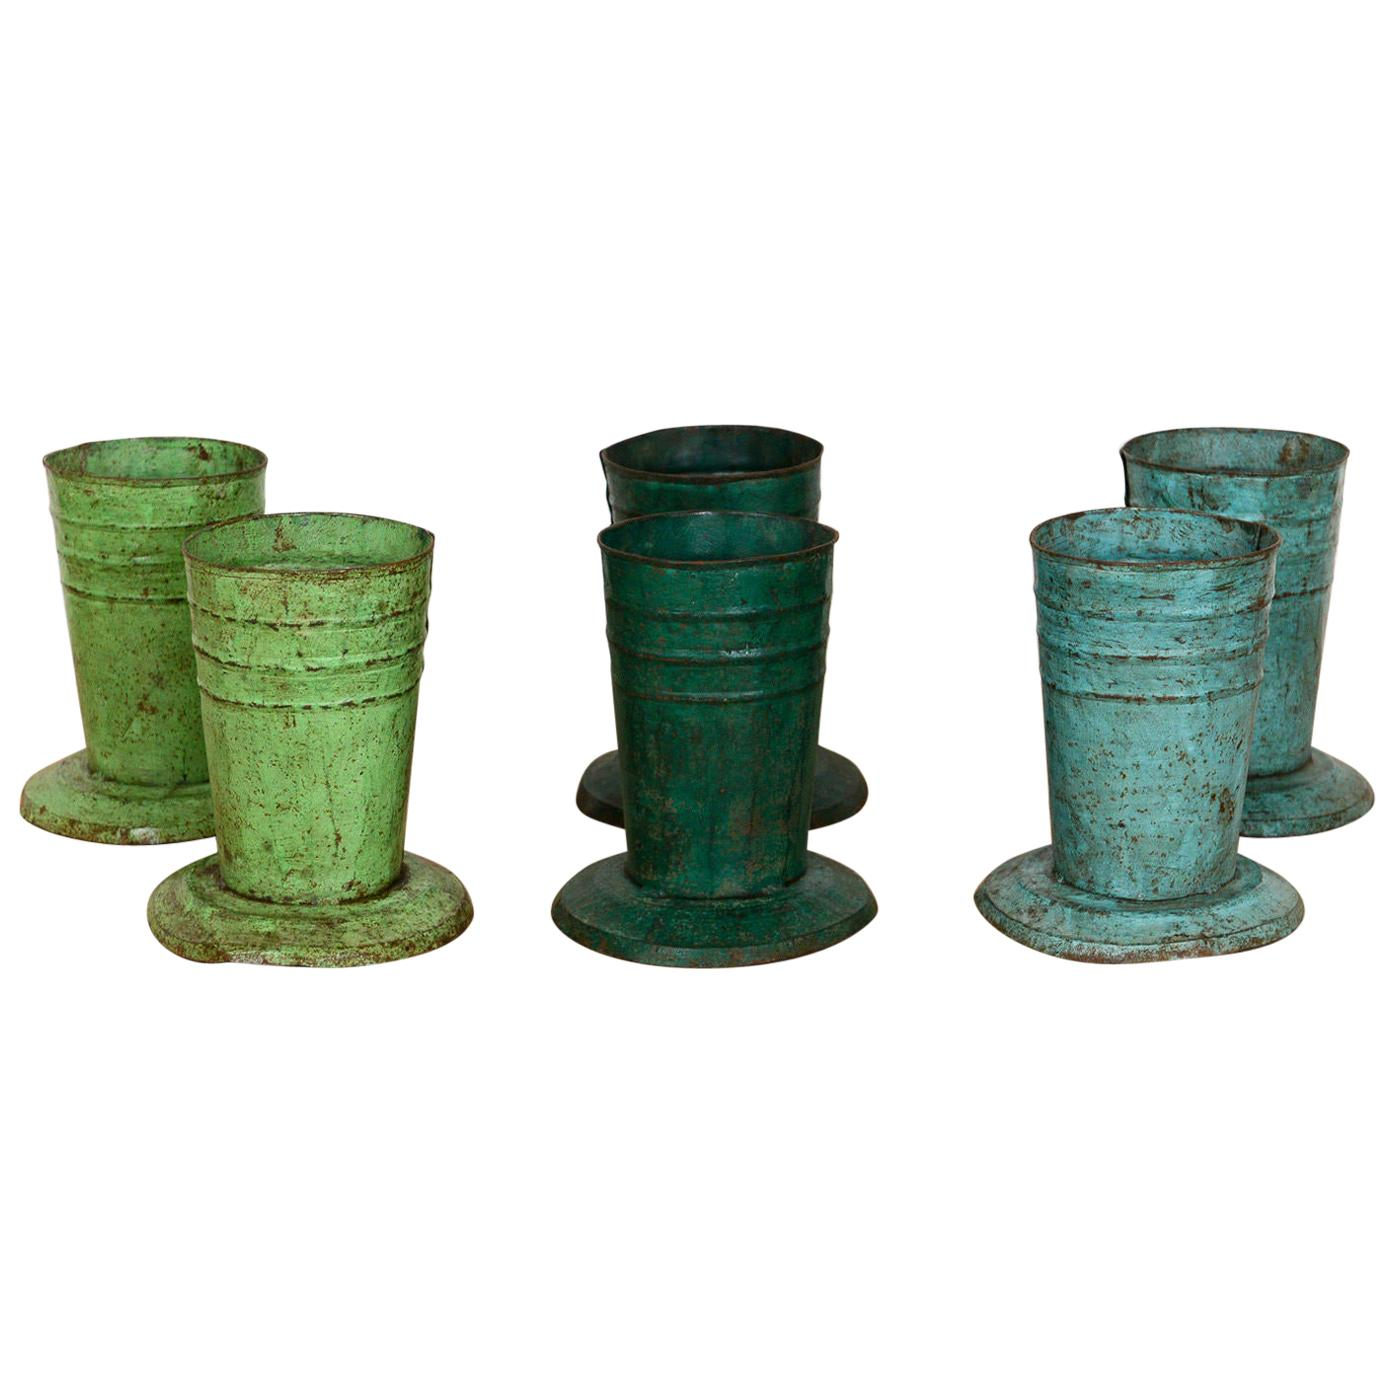 Rustic Vases or Pots Made from Recycled Metal, 20th Century